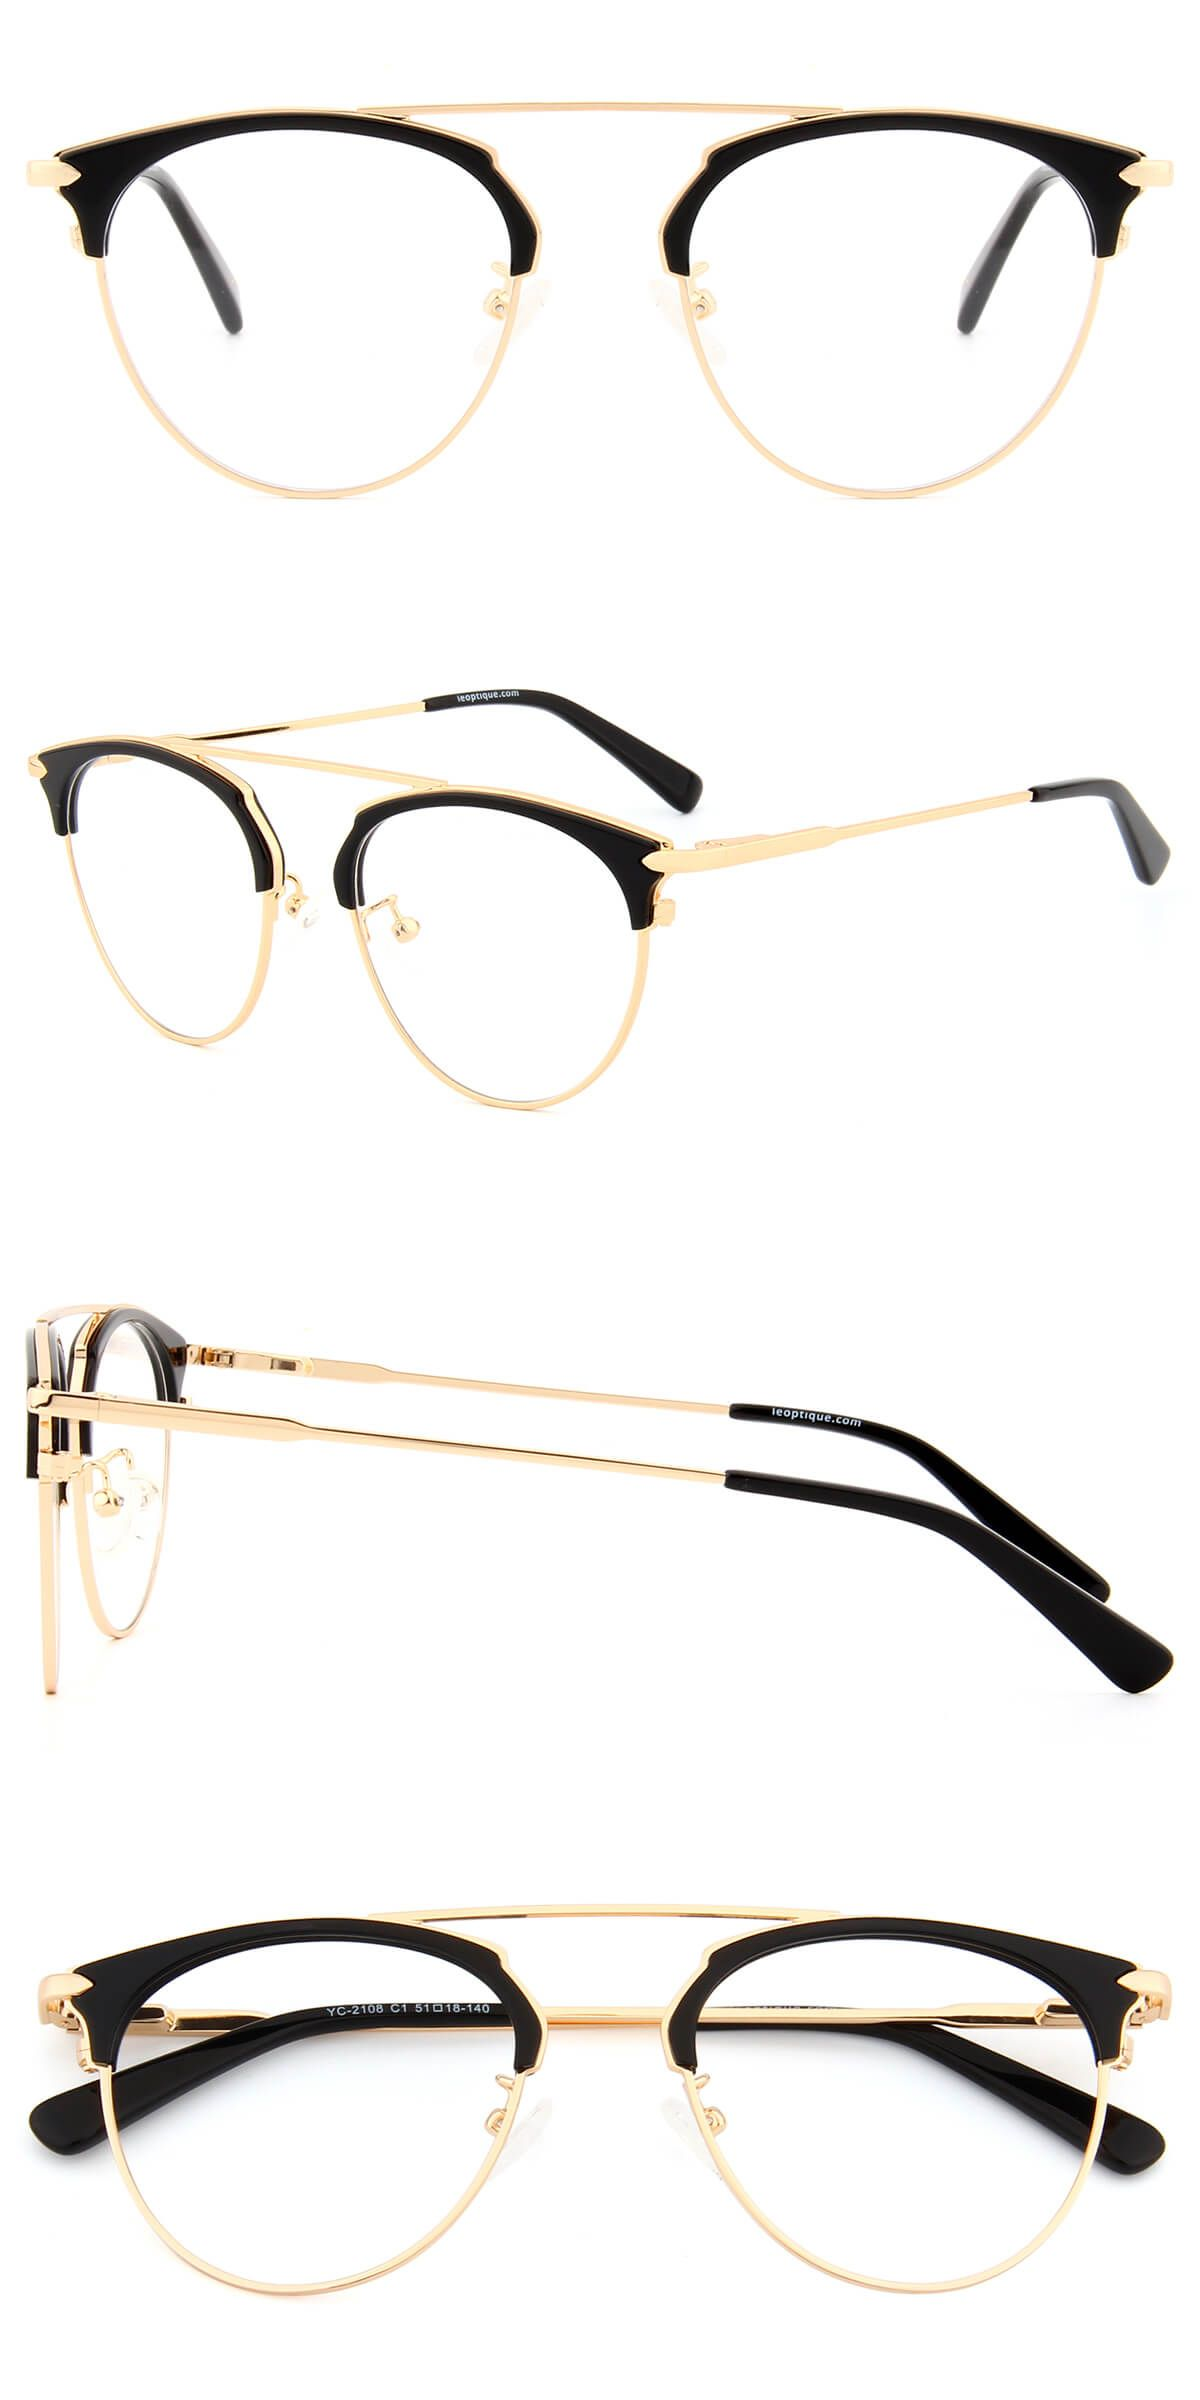 1568775dba The browline shape frame front lead to an old-fashion style with the black  frame